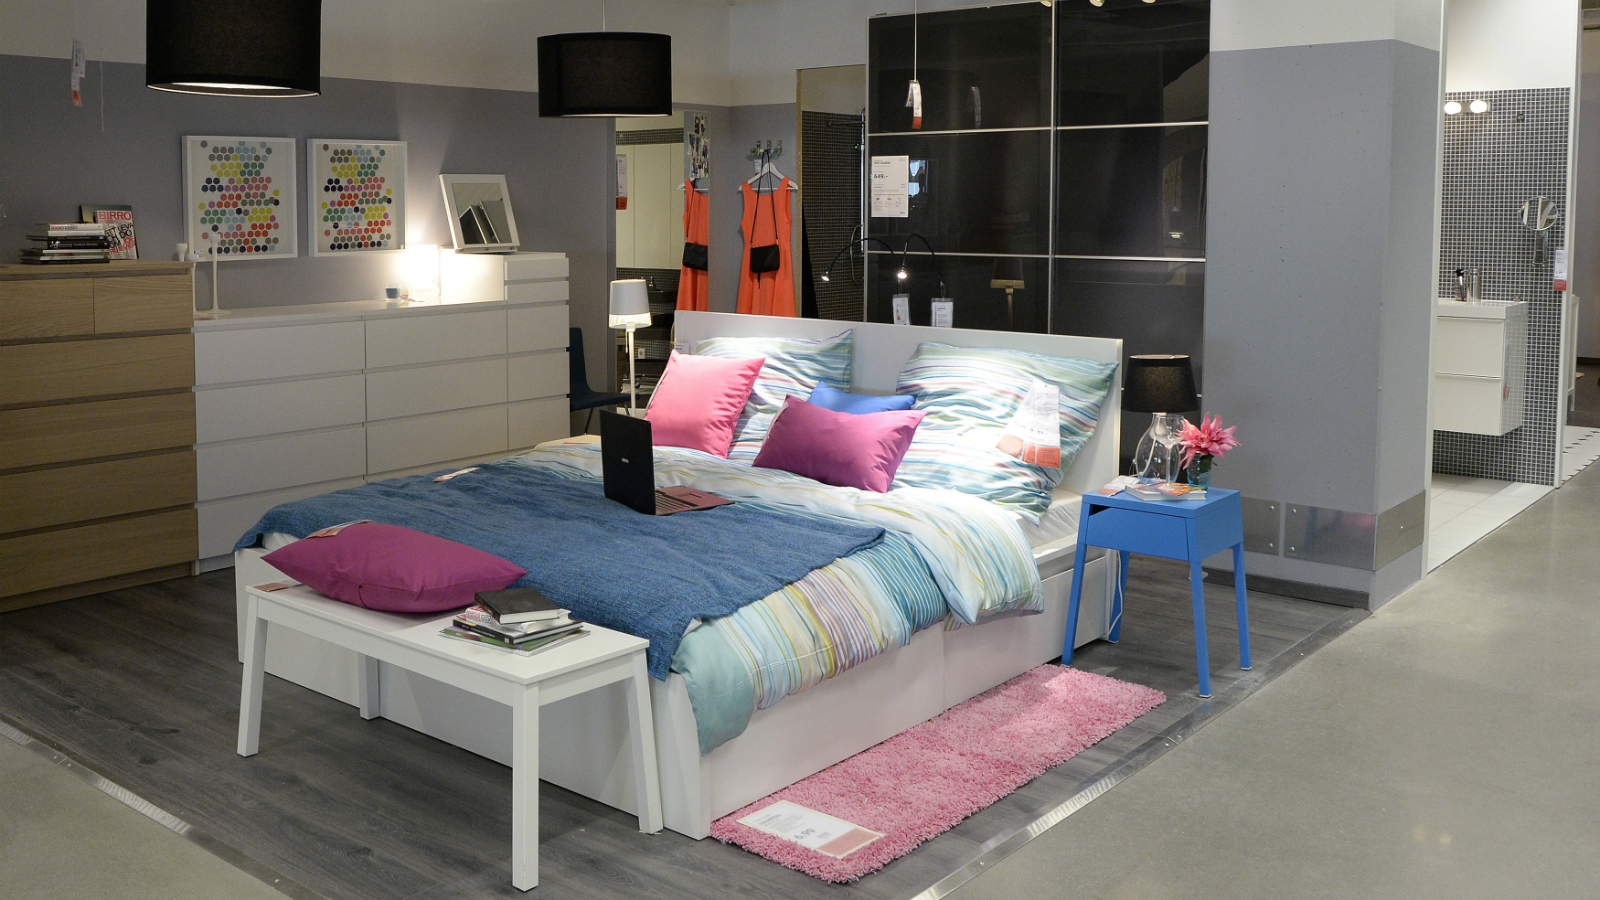 A bedroom set up is pictured in IKEA's first city centre store in Hamburg June 25, 2014. Sweden's IKEA, the world's biggest furniture chain known for its sprawling out-of-town showrooms, is opening its first city centre store as it responds to a shift in shopping habits to smaller local stores and the Internet. While IKEA has already opened a few stores closer to city centres than usual in countries like Britain and Japan, its new building in the northern German port city of Hamburg is the first time it will be in a central pedestrian shopping zone.